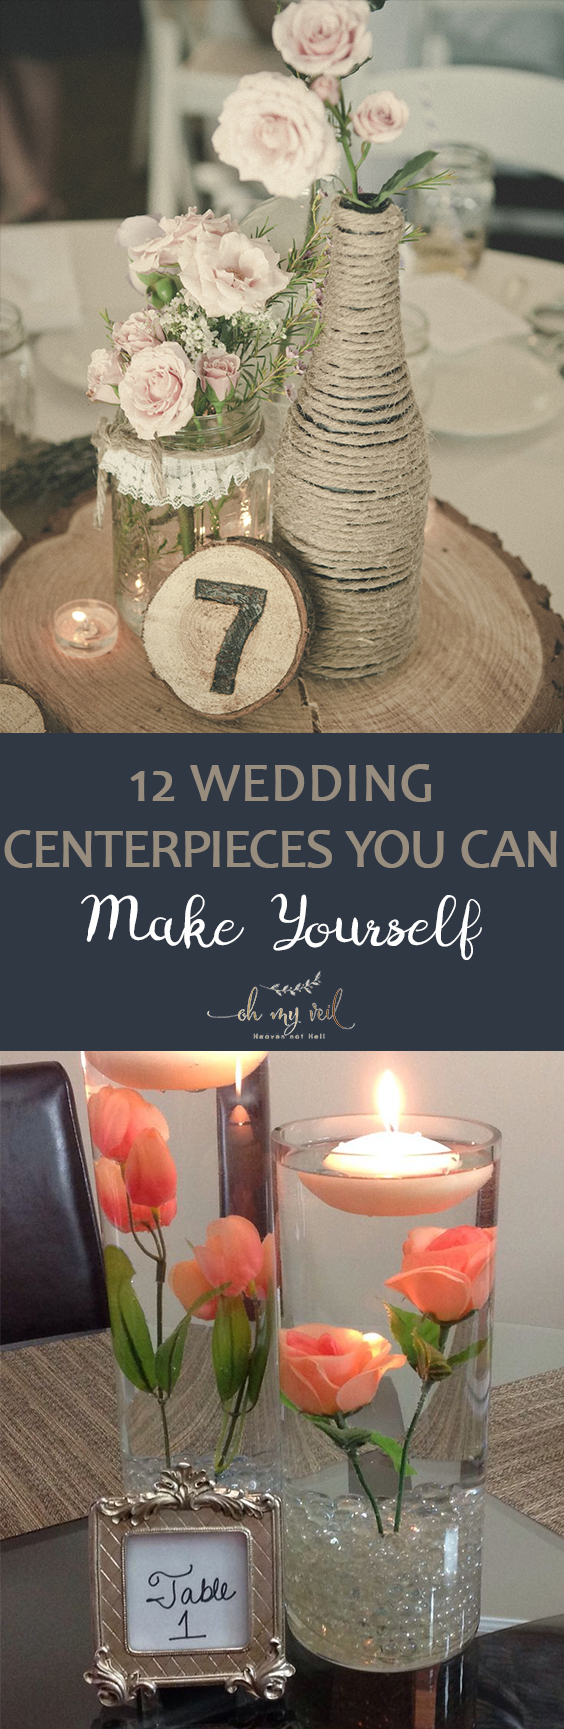 12 Wedding Centerpieces You Can Make Yourself| DIY Wedding, DIY Centerpieces, Wedding Centerpieces, Homemade Wedding Centerpieces, Wedding, Dream Wedding, DIY Wedding #DIYWedding #Wedding #WeddingHacks #WeddingCenterpieces